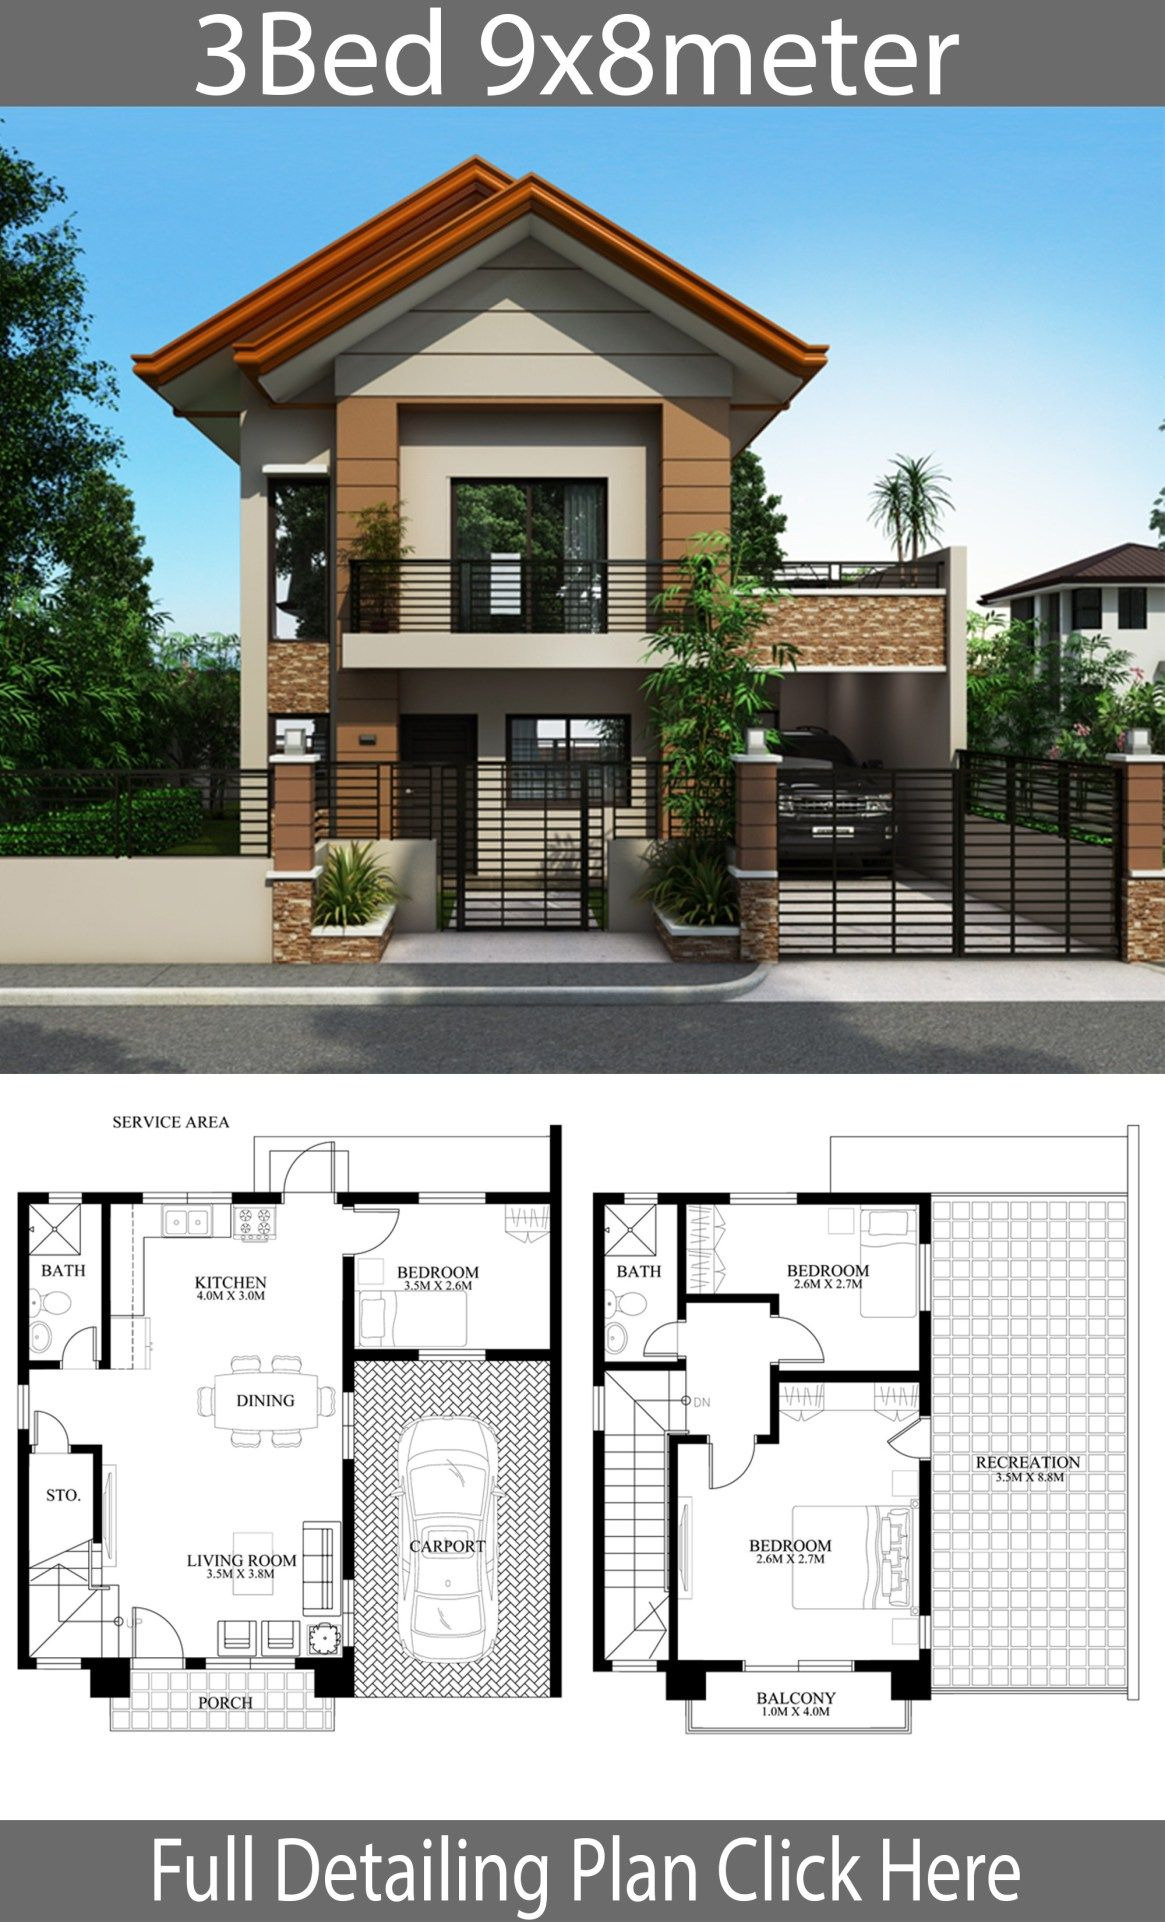 Architecture Simple House Designs Inspirational Home Design Plan 9x8m with 3 Bedrooms